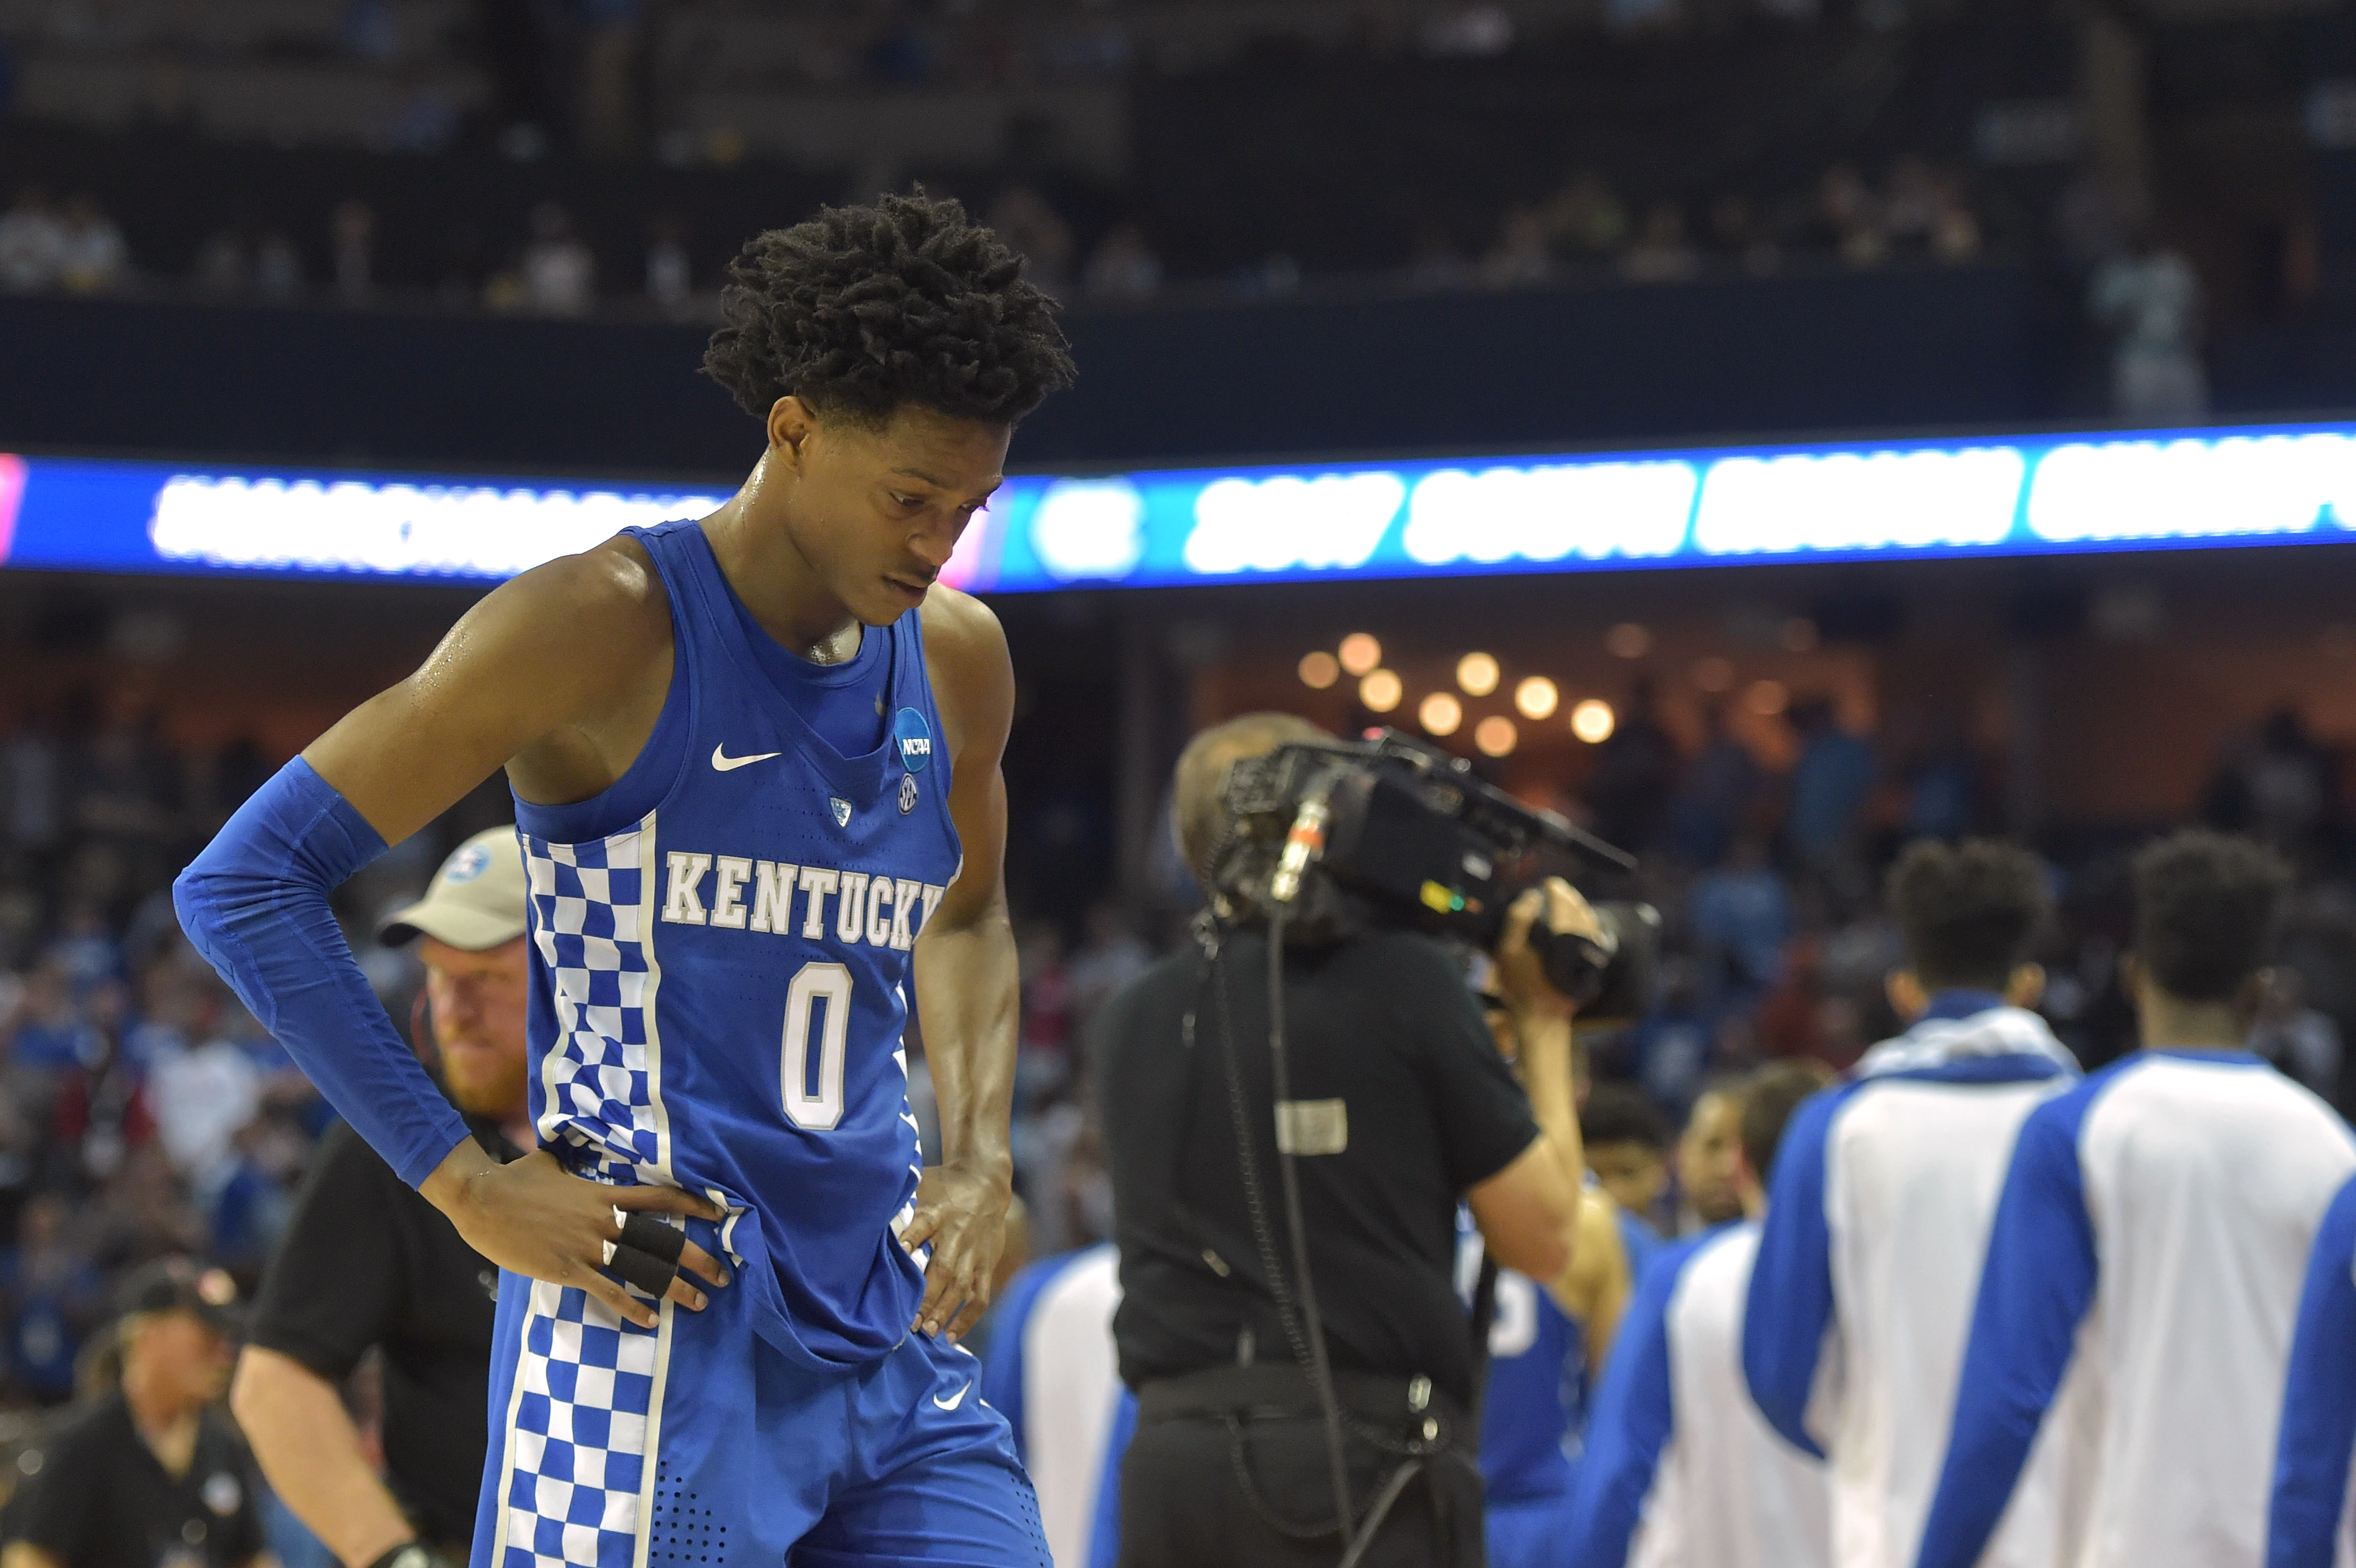 reputable site 9bad5 6185a NBA Draft 2017 Prospect Watch: Kentucky's De'Aaron Fox - Page 3